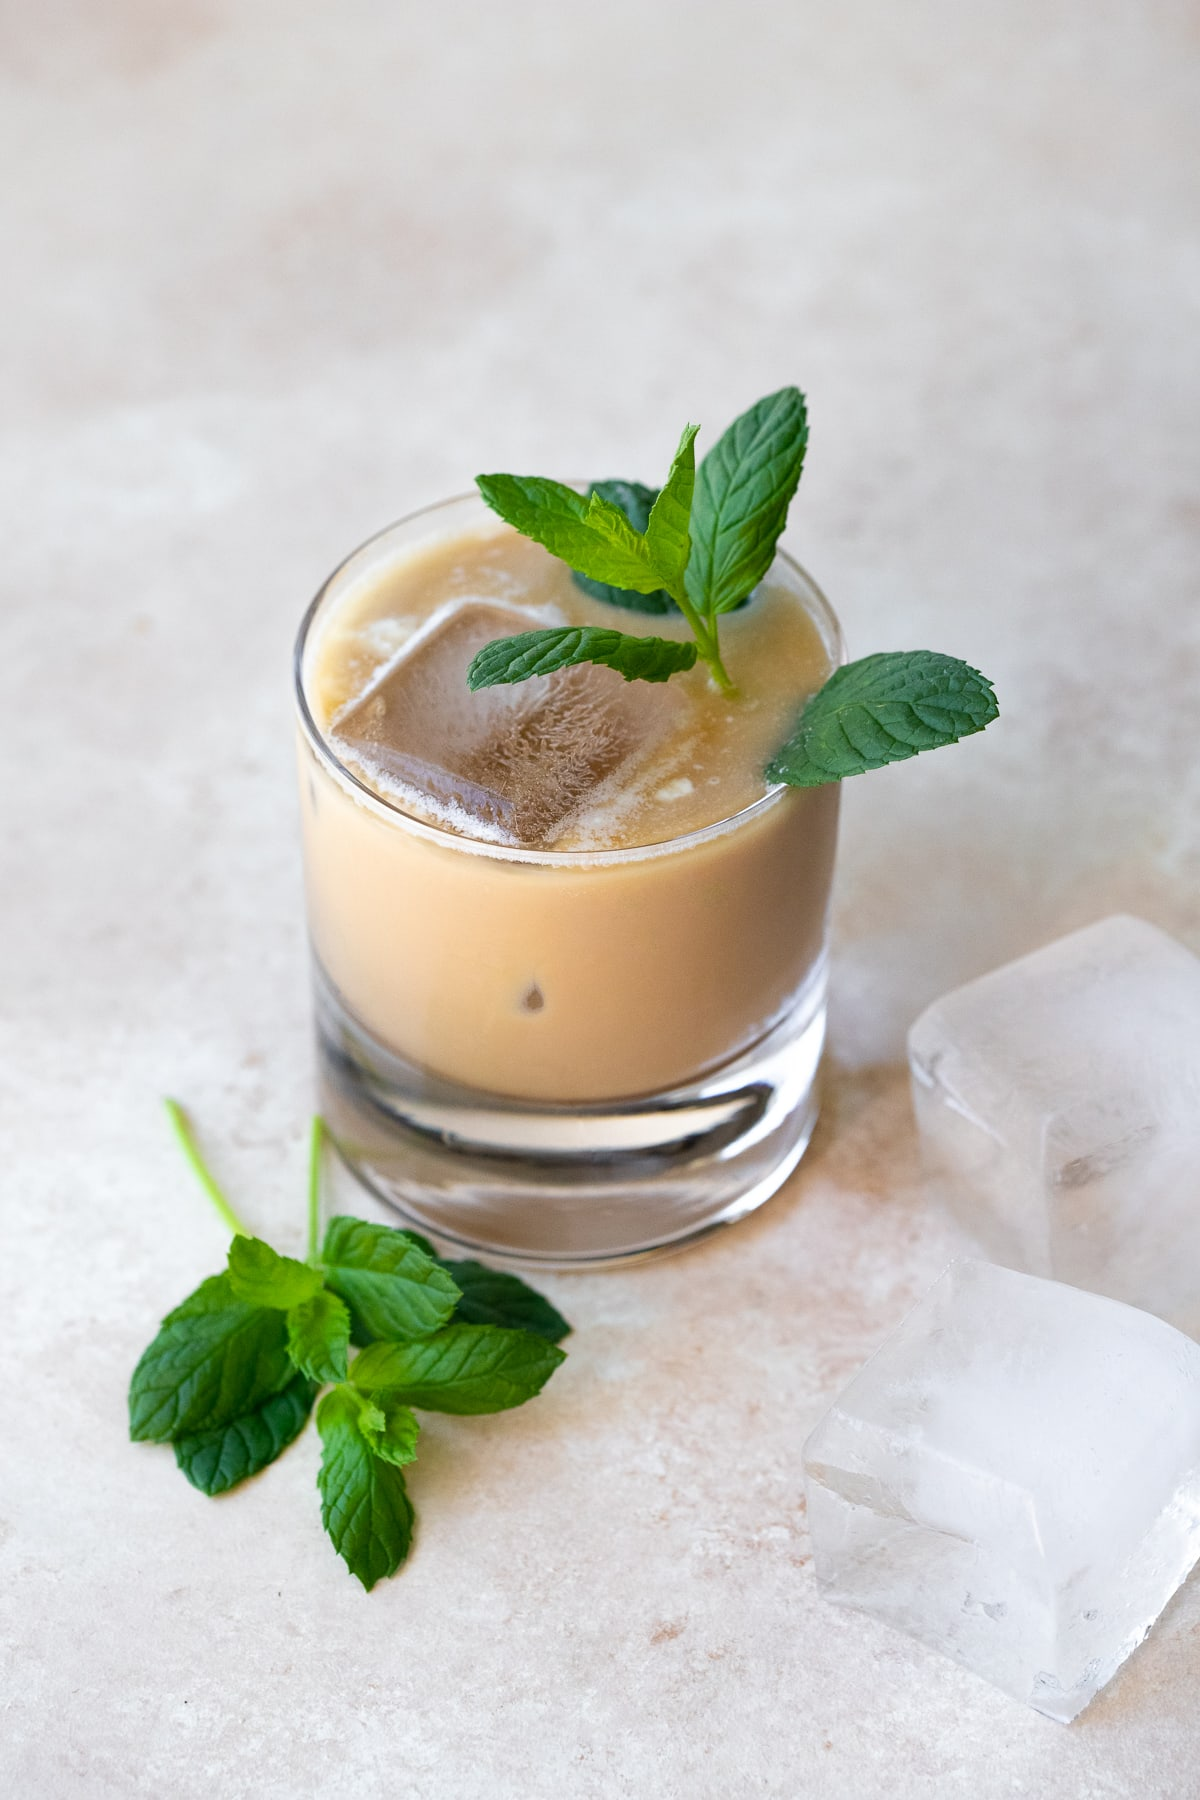 Angled view of a single iced coffee, with mint springs and ice cubes in the foreground.